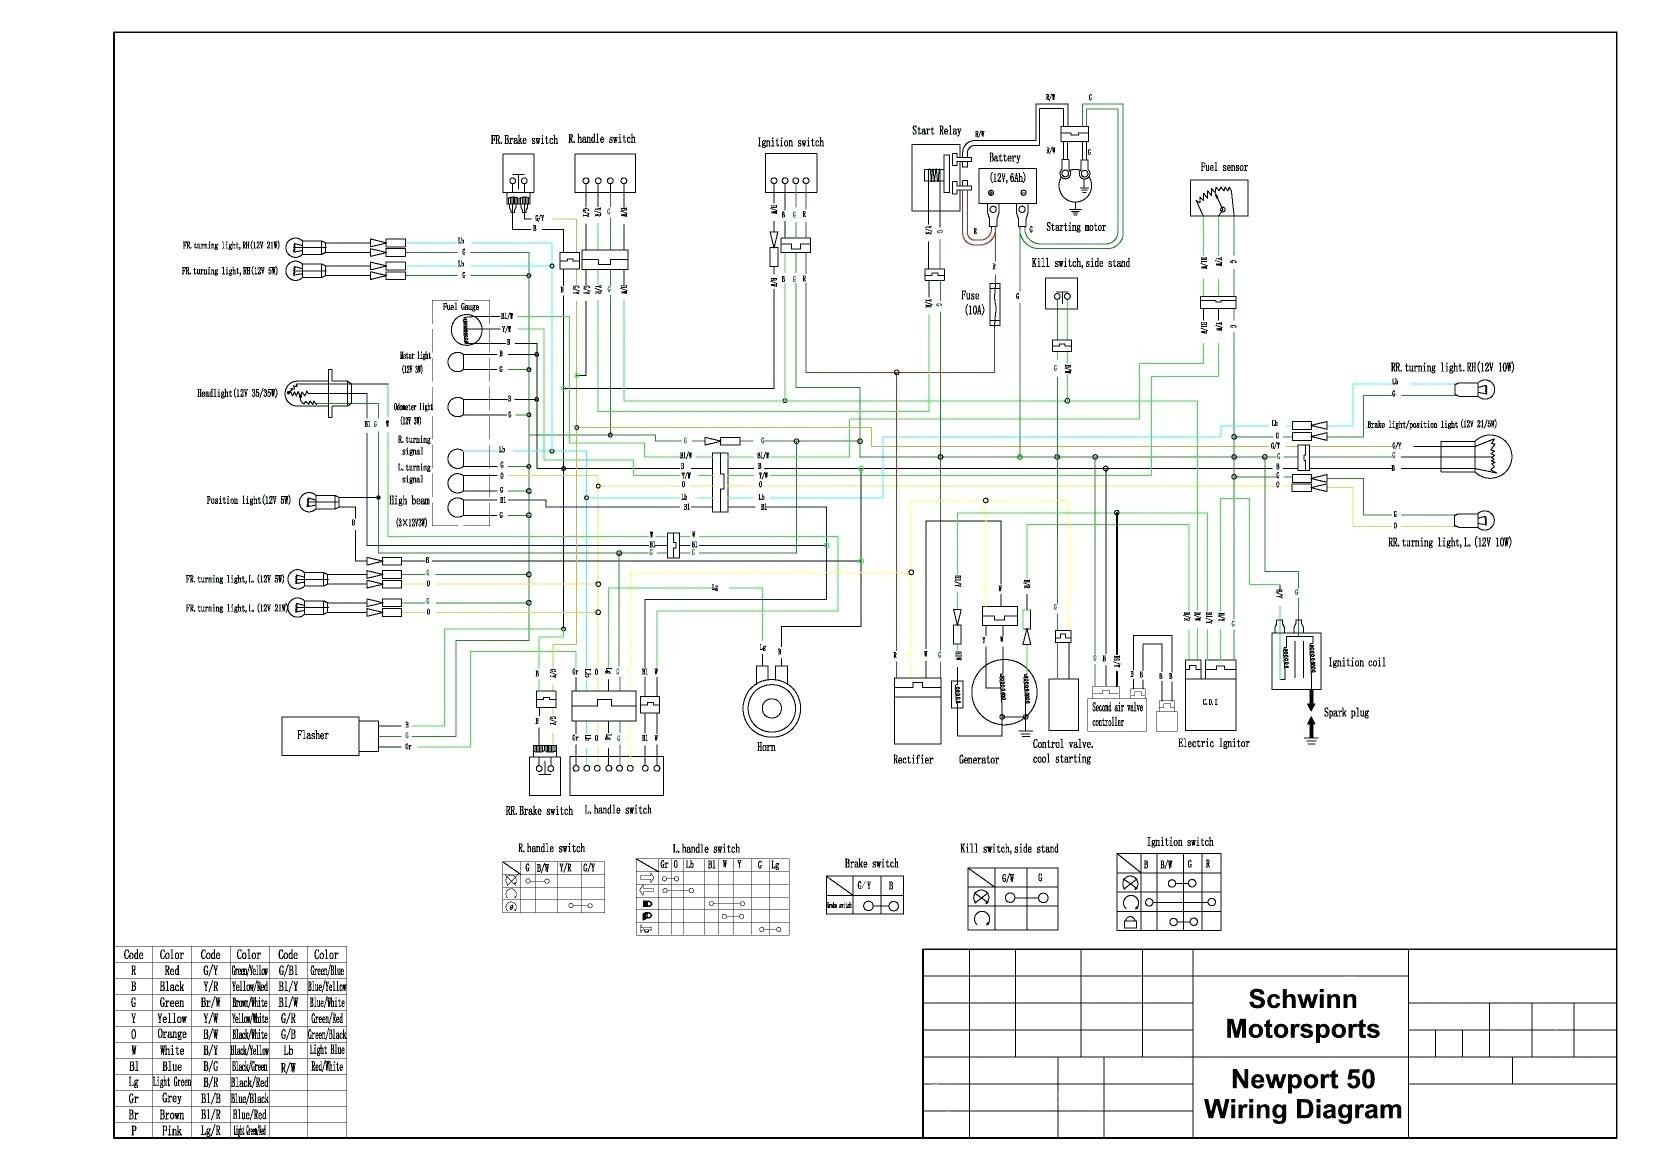 Taotao Electric Scooter Wiring Diagram Libraries Pocket Bike 110cc Mini Chopper Hecho Tao Simple Diagramskymco 50cc Diagrams Img